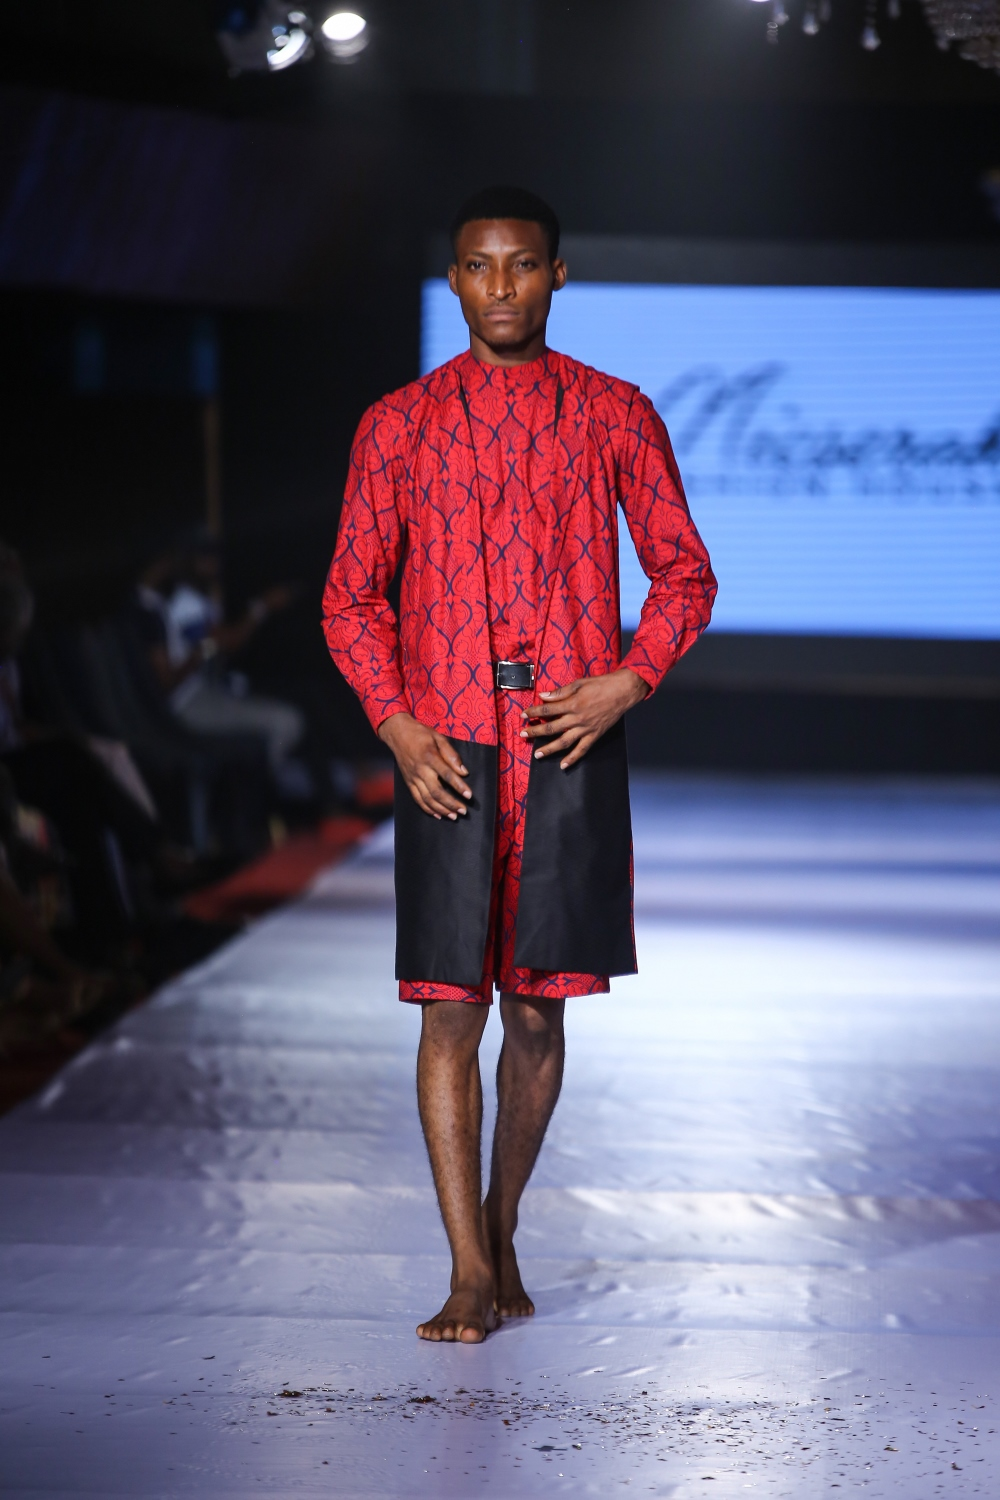 #AFWN17 | Africa Fashion Week Nigeria DAY 2: Micserah